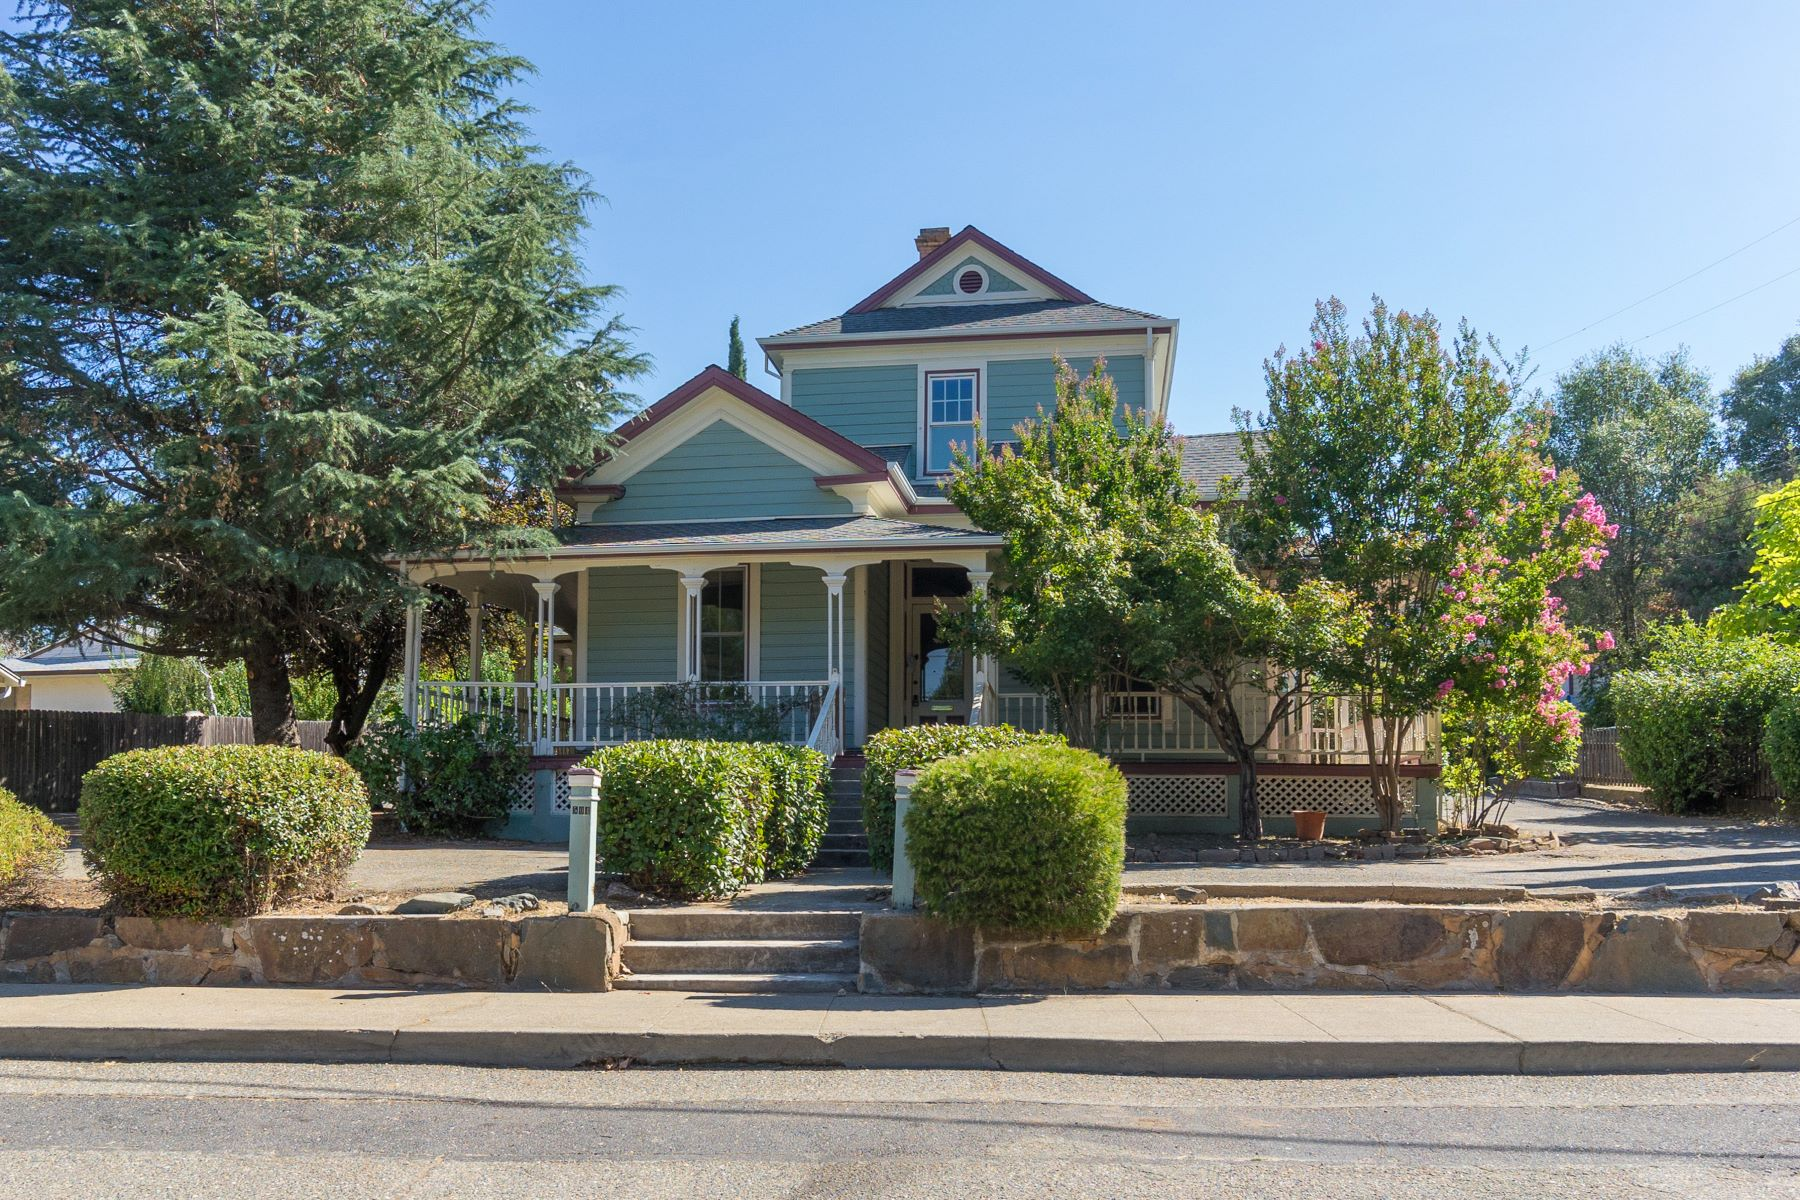 Single Family Home for Sale at Characteristics of the early 1900 era 504 Broadway Jackson, California 95642 United States